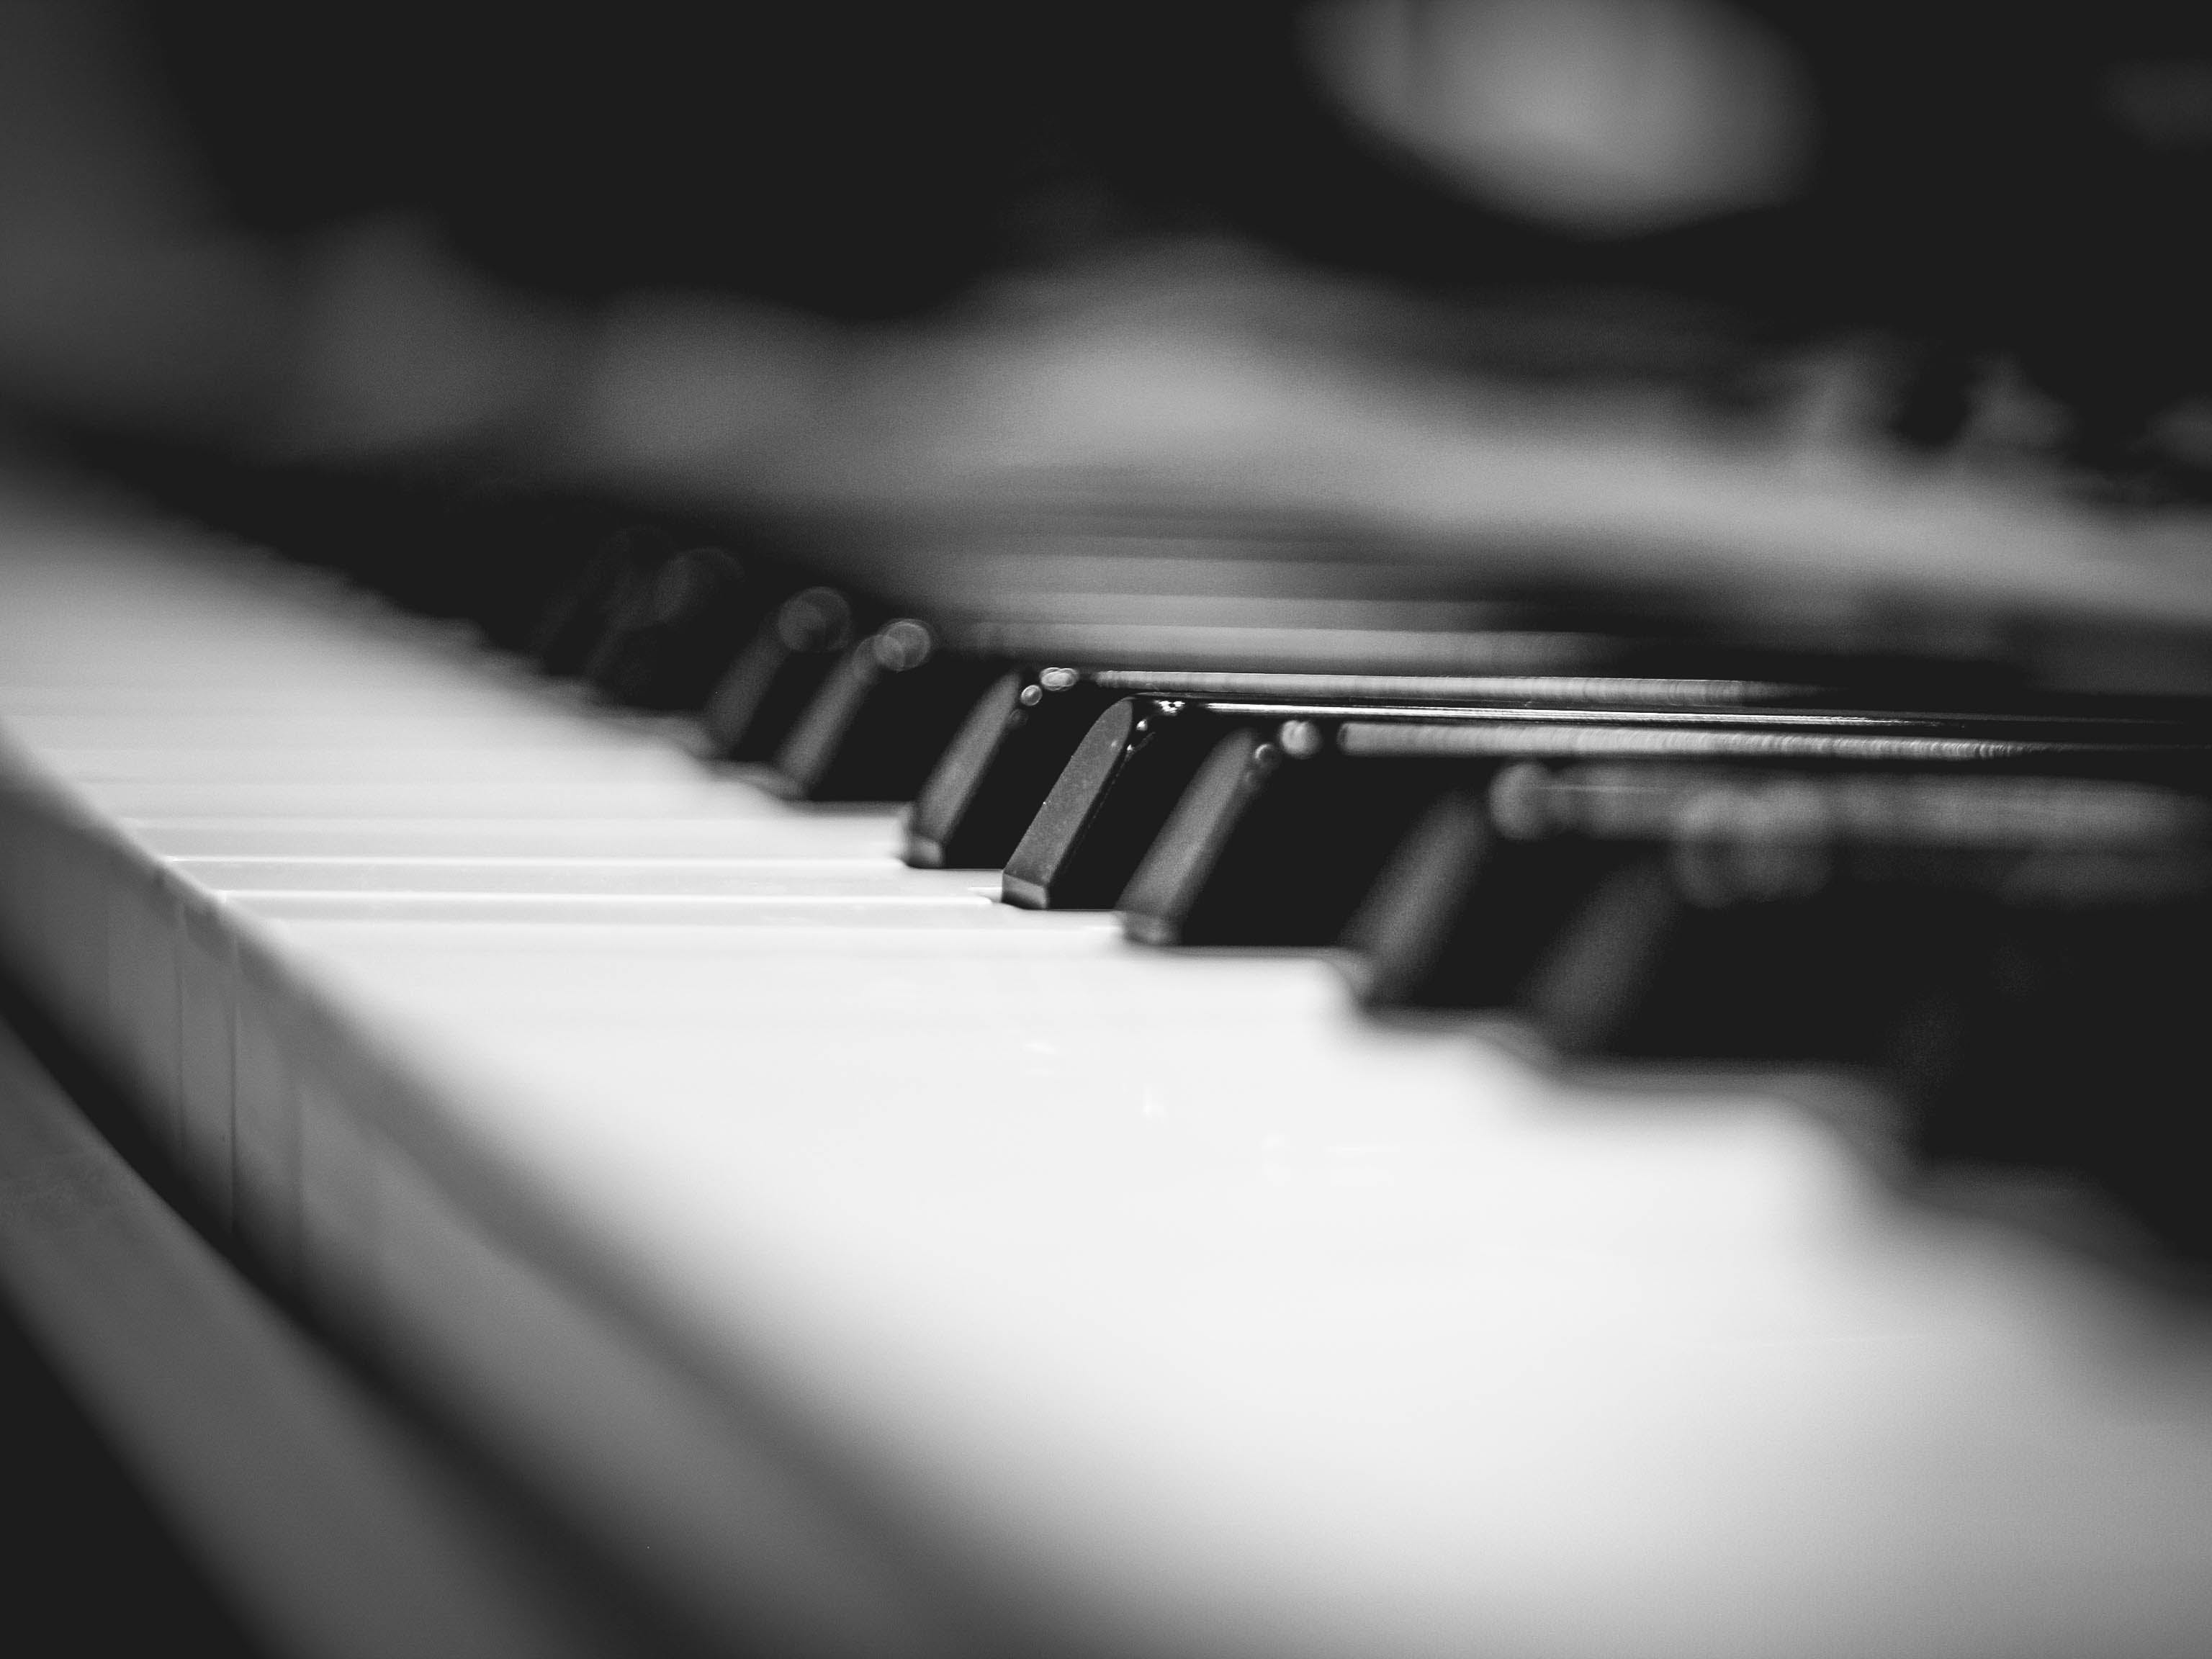 Macro Photography of Piano